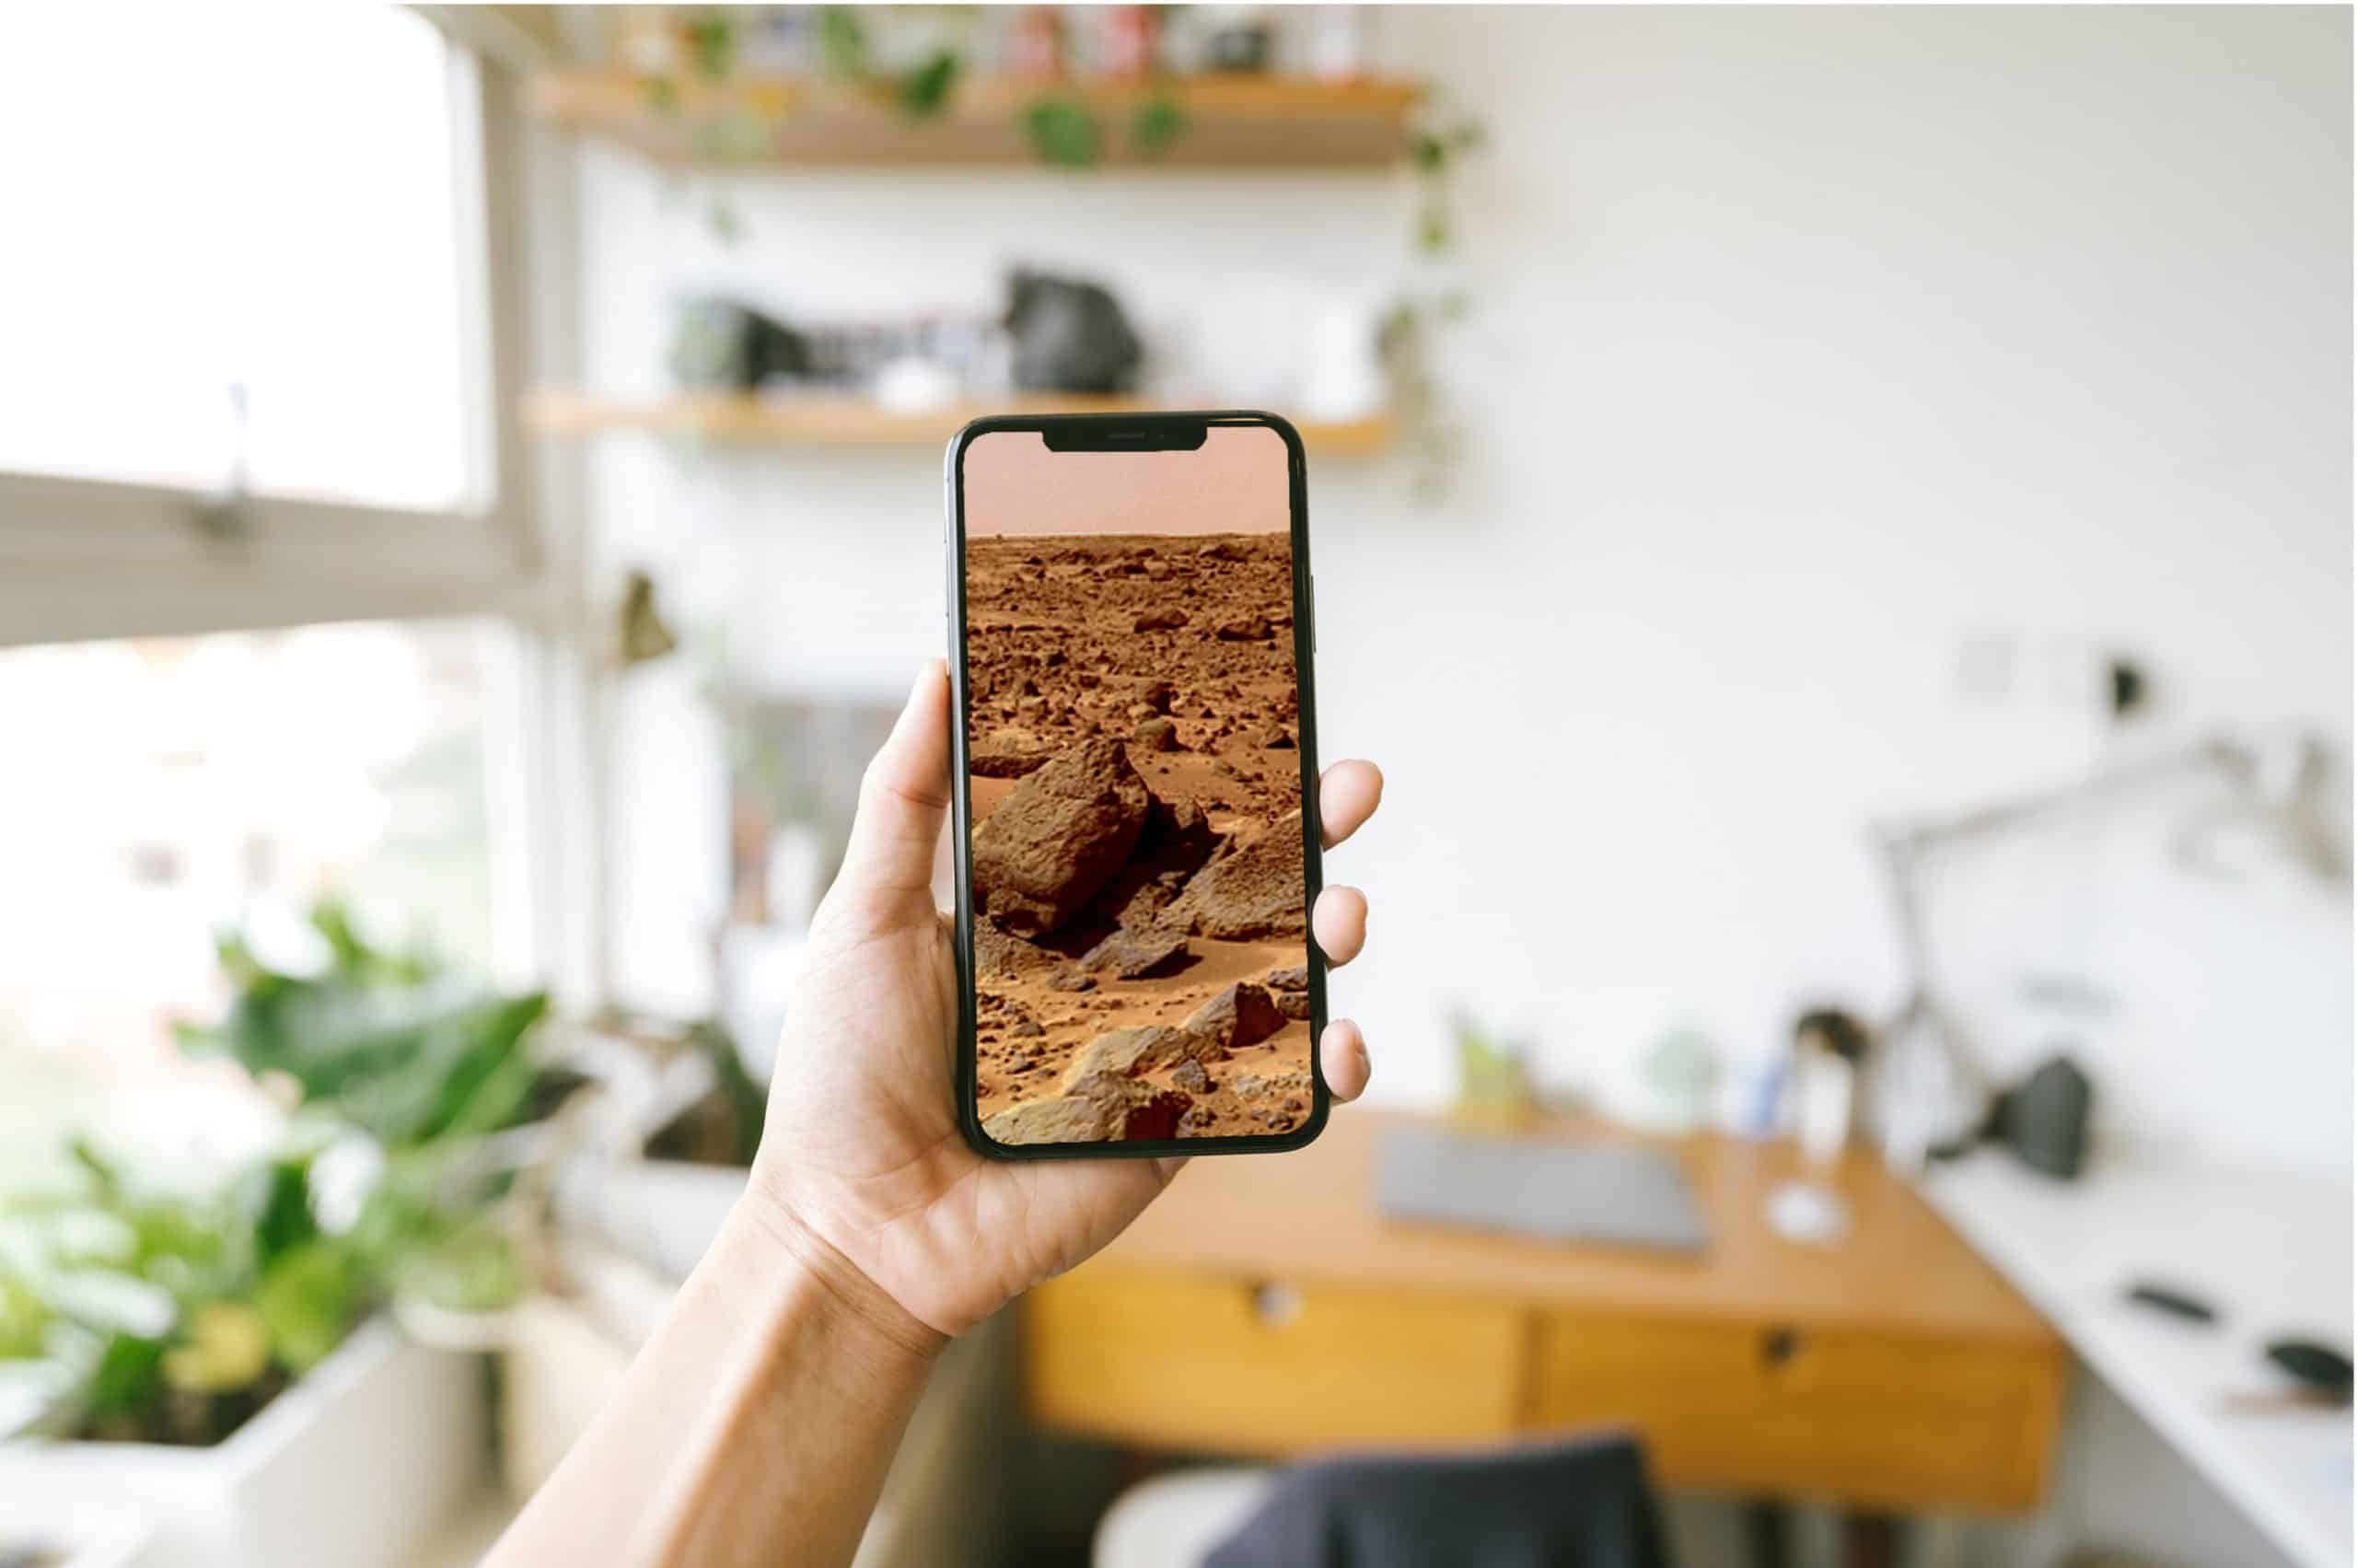 Land On Mars In Your Living Room With AR